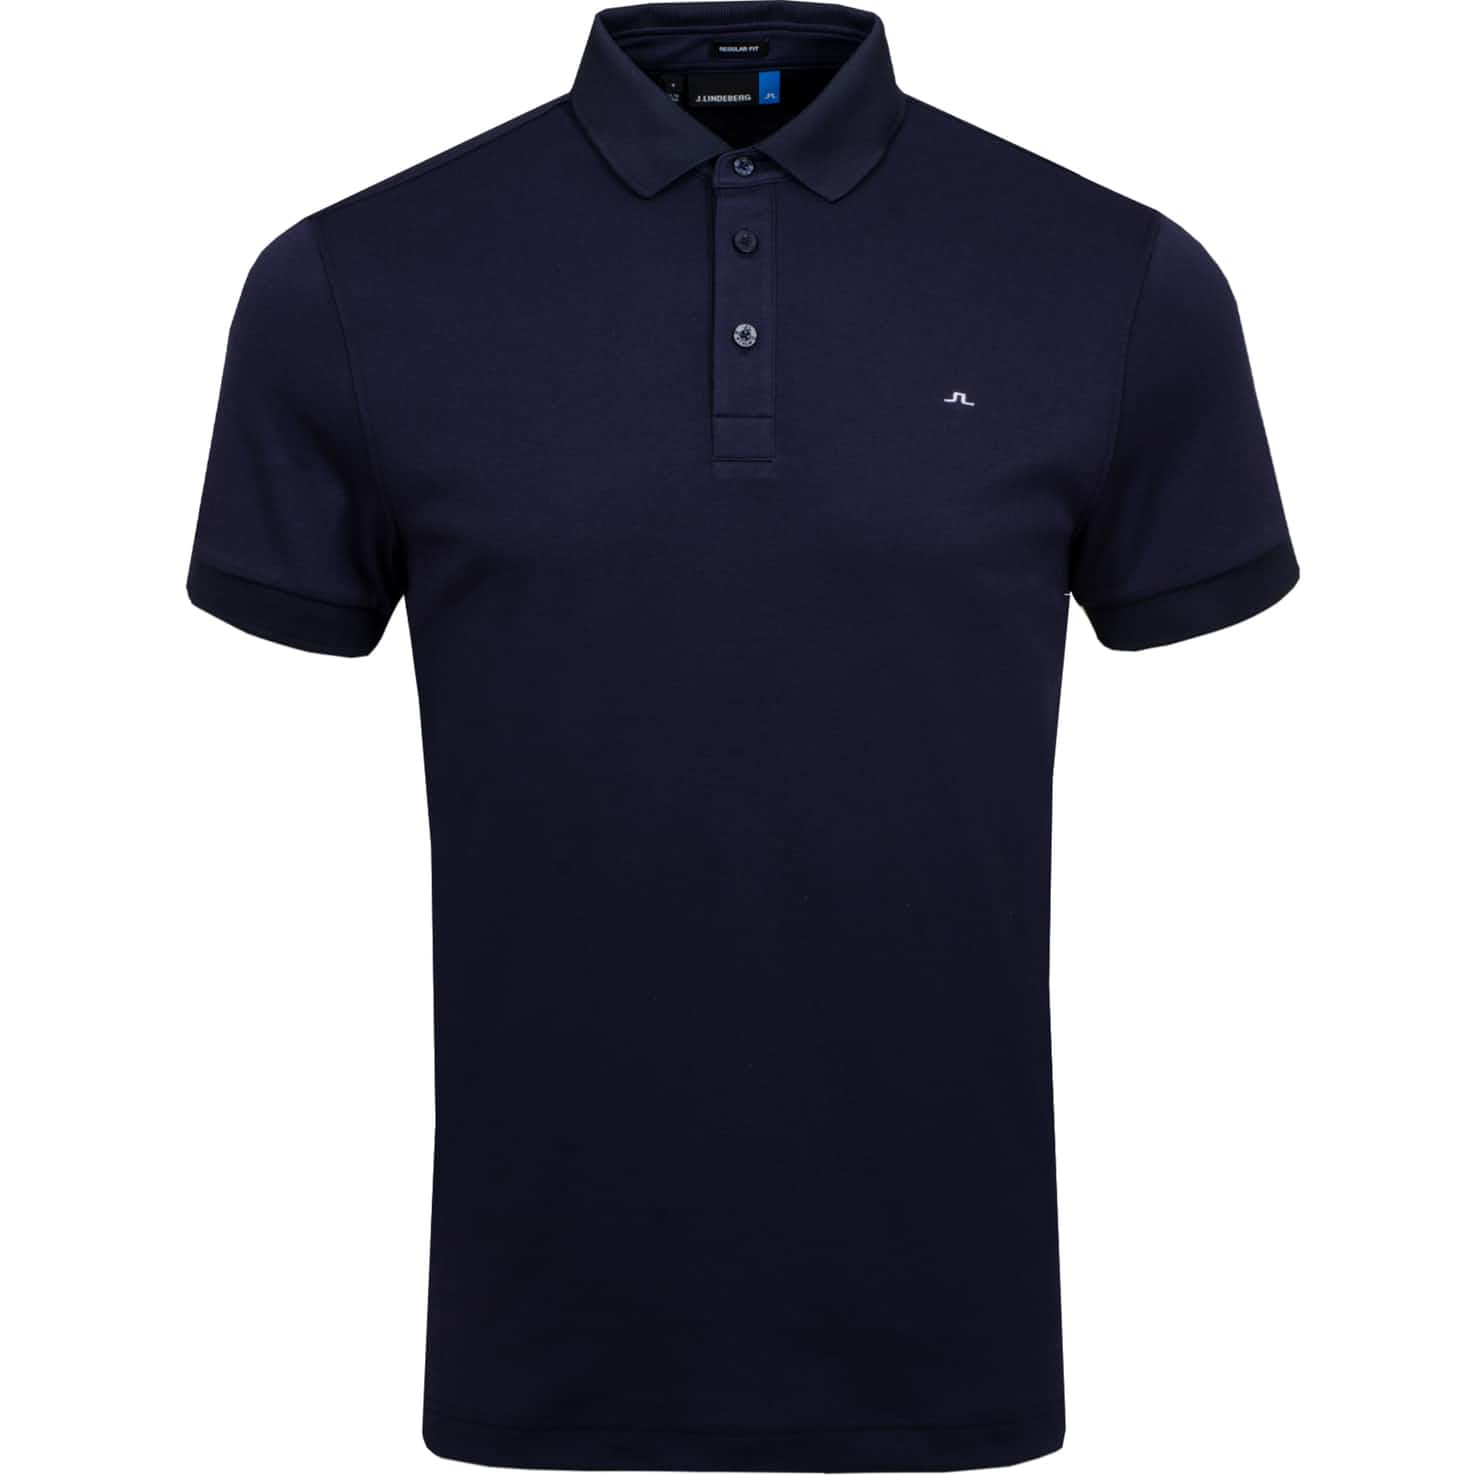 Stan Regular Fit Club Pique JL Navy - SS20